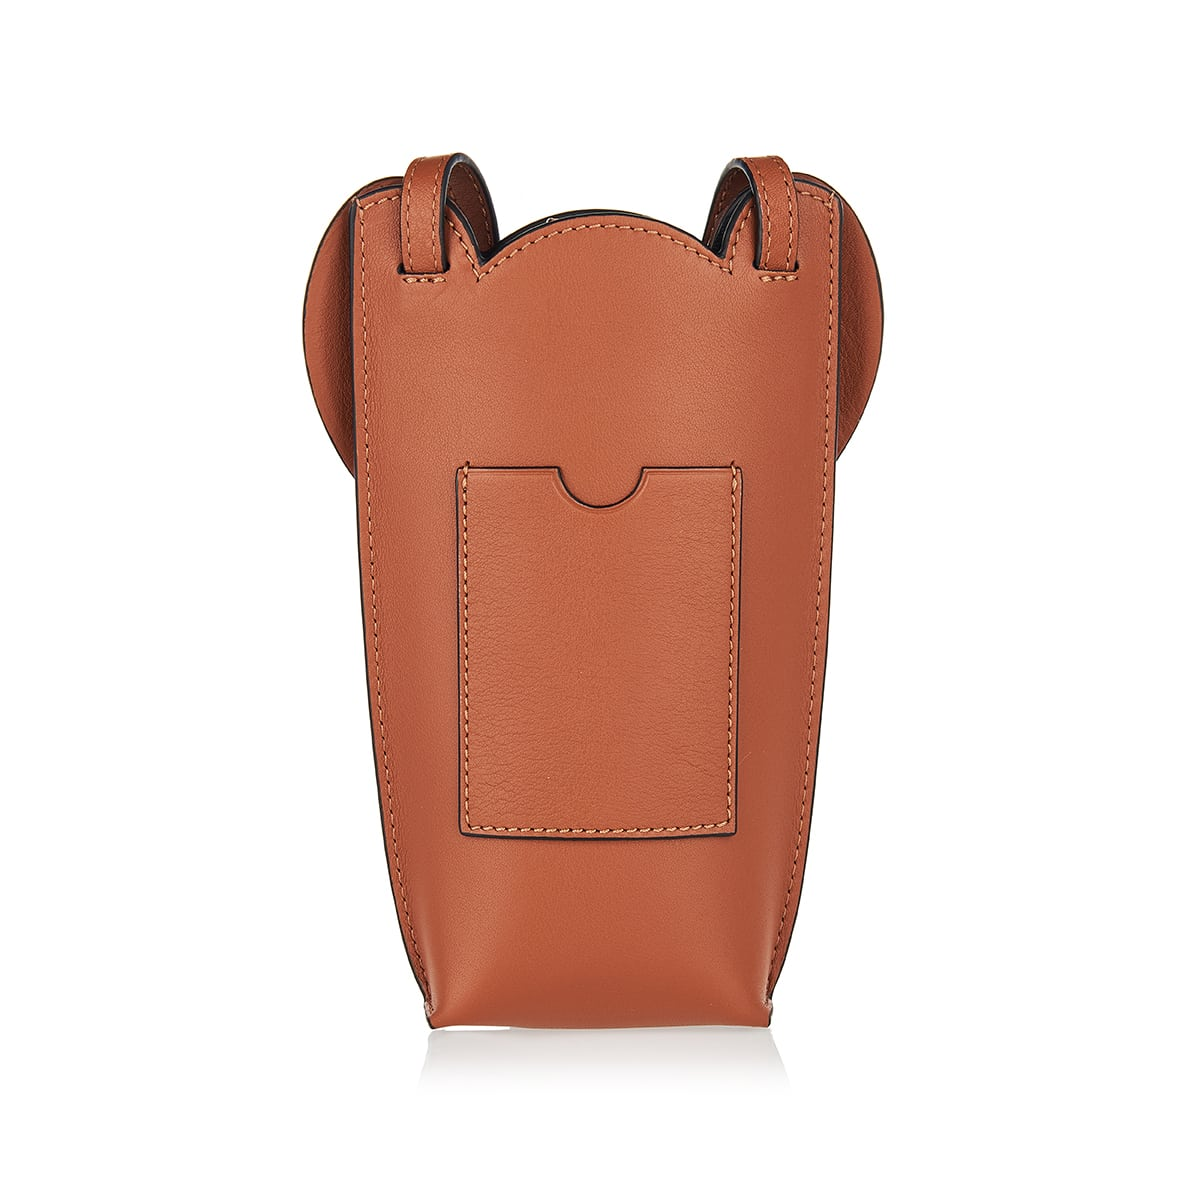 Elephant Pocket leather pouch